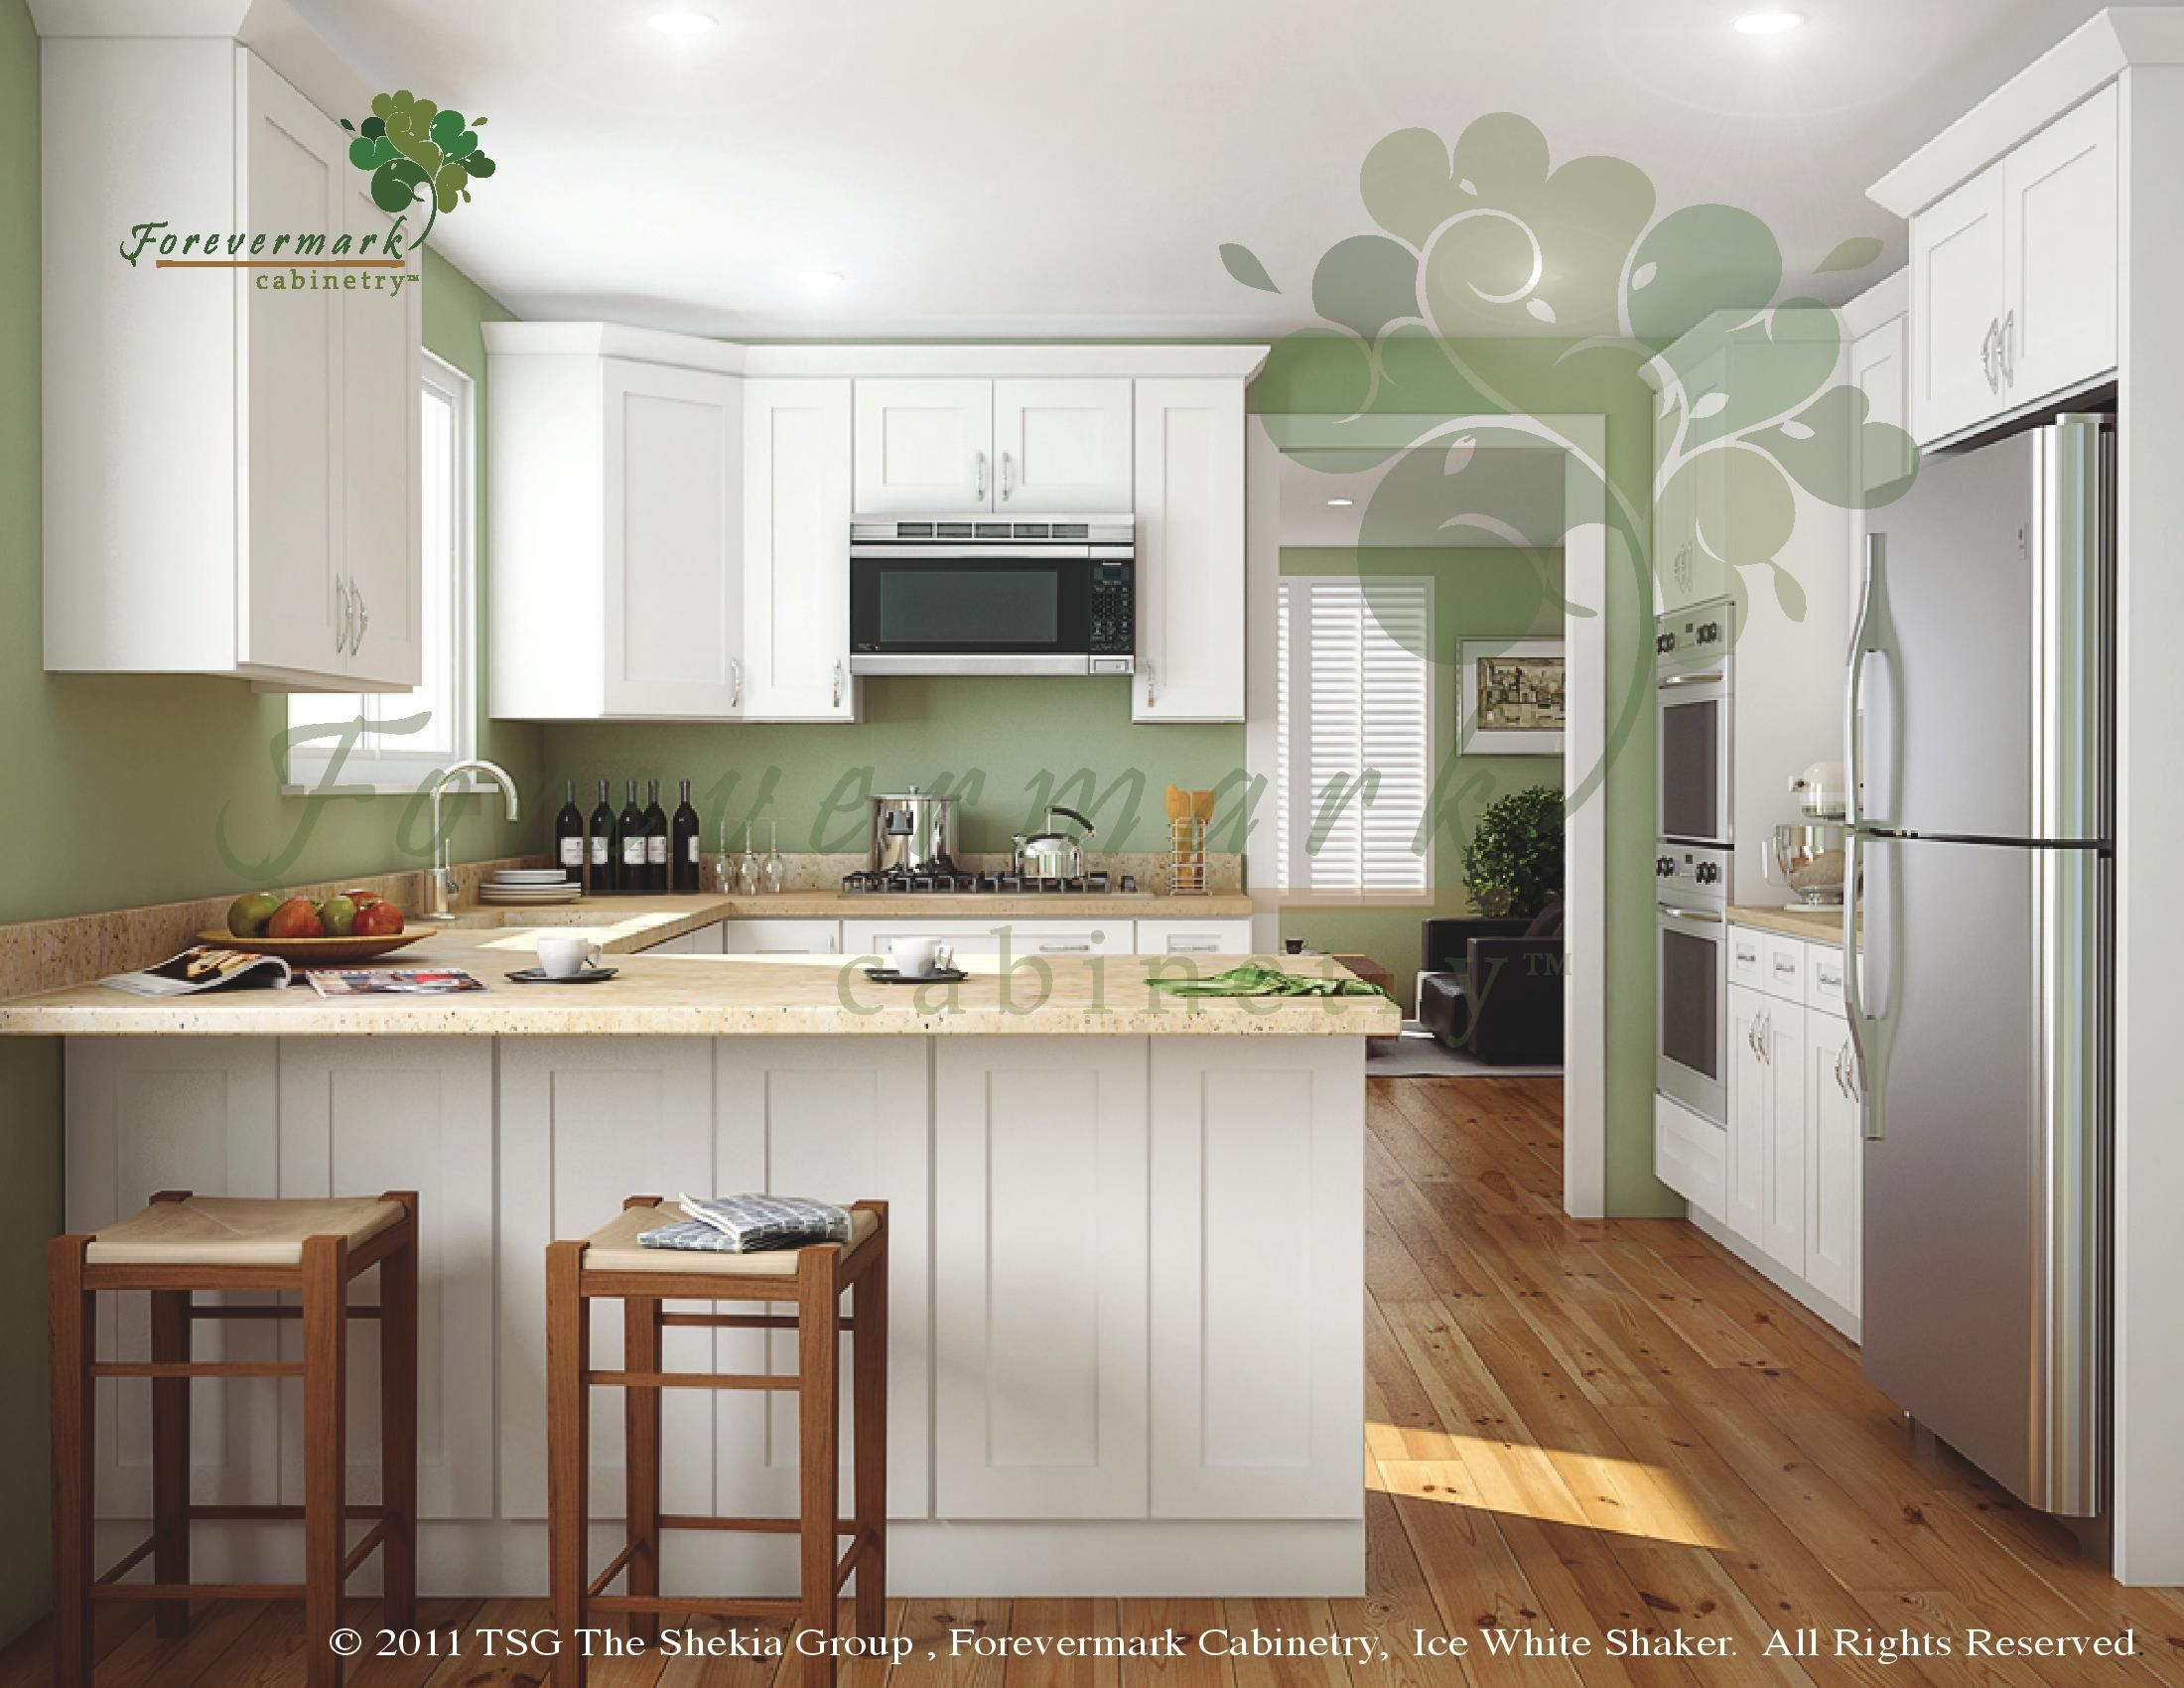 White Shaker Kitchen Cabinets Kitchen Cabinets Rta Kitchen Cabinets Ba White Shaker Kitchen Cabinets Shaker Style Kitchen Cabinets Assembled Kitchen Cabinets